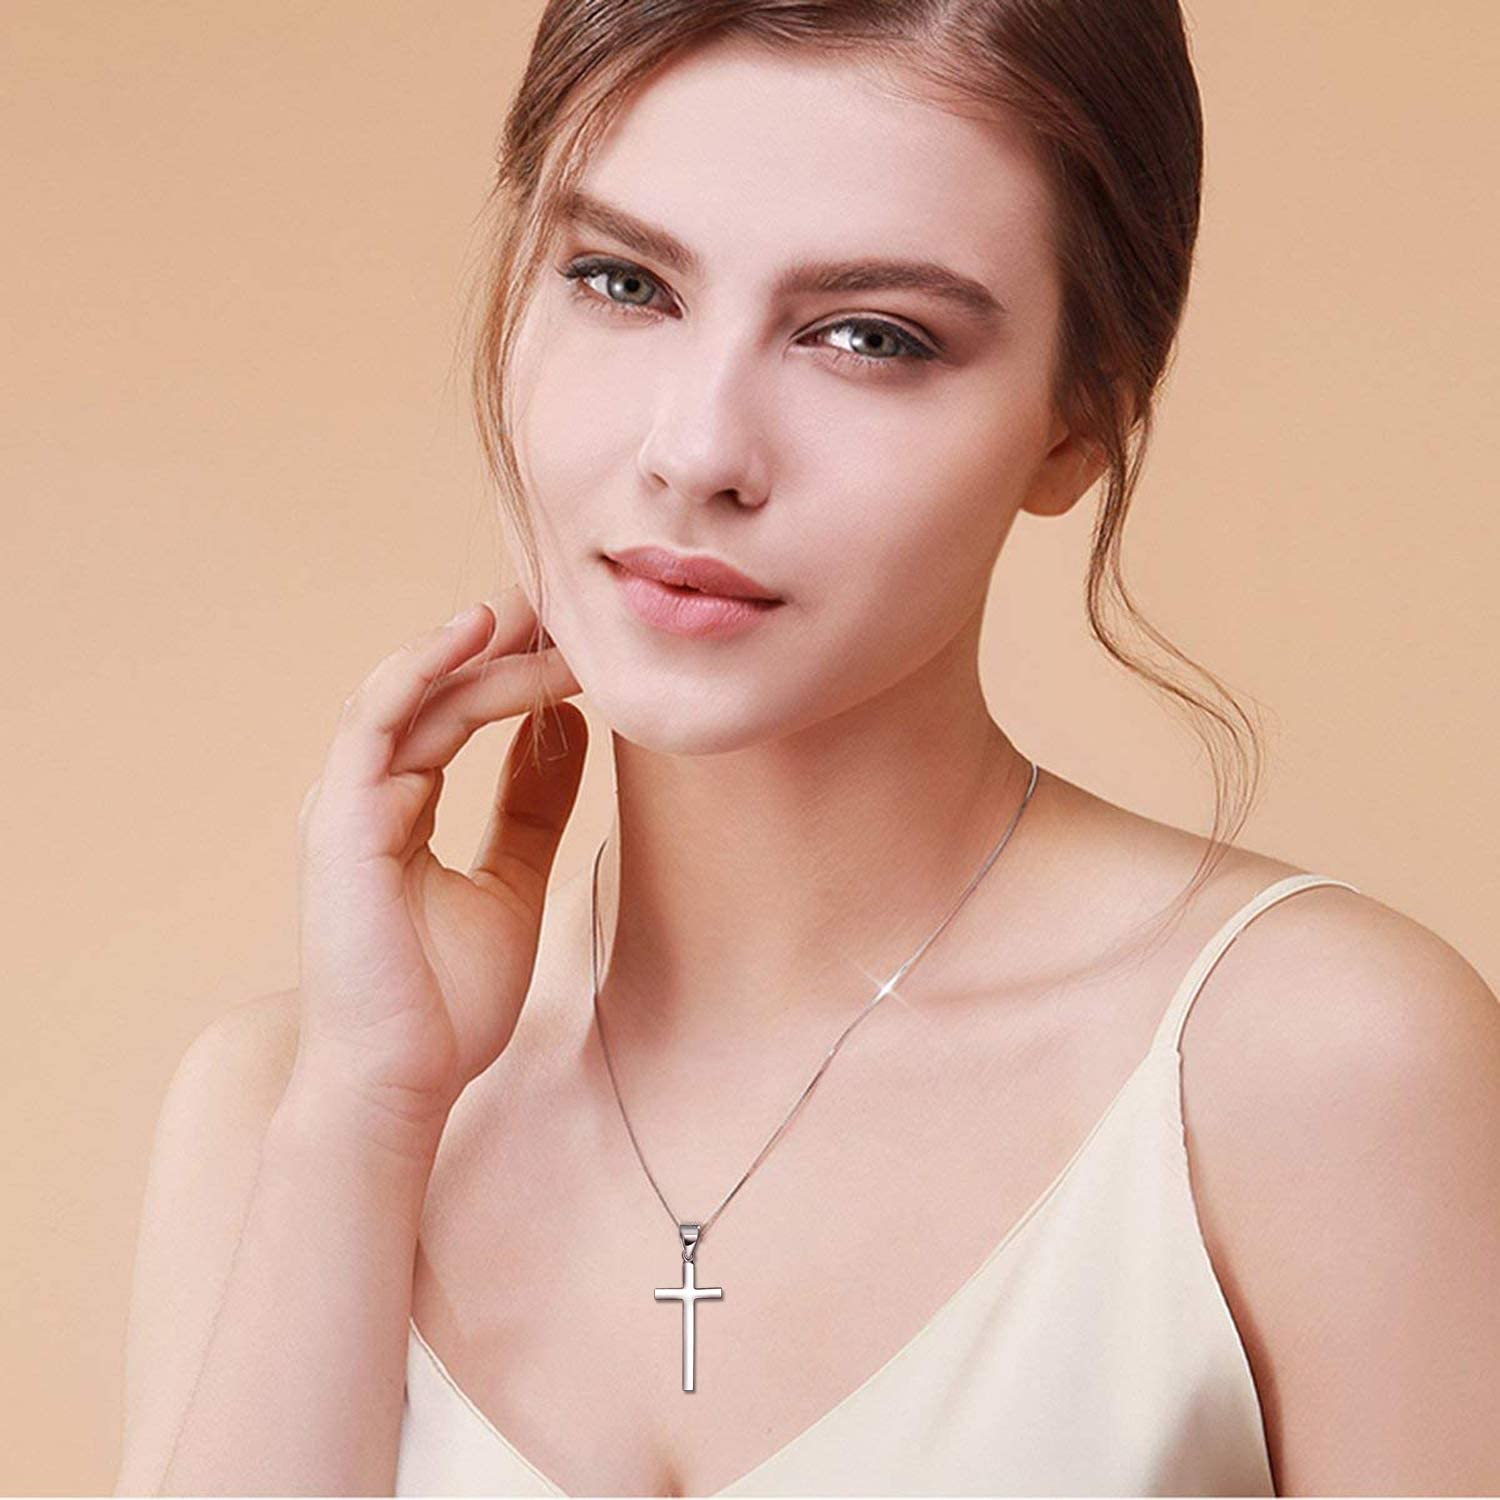 XOYOYZU Tiny Cross Pendant Necklace for Women Simple Cross Necklaces Mothers Day Birthday Gifts for Women Girl